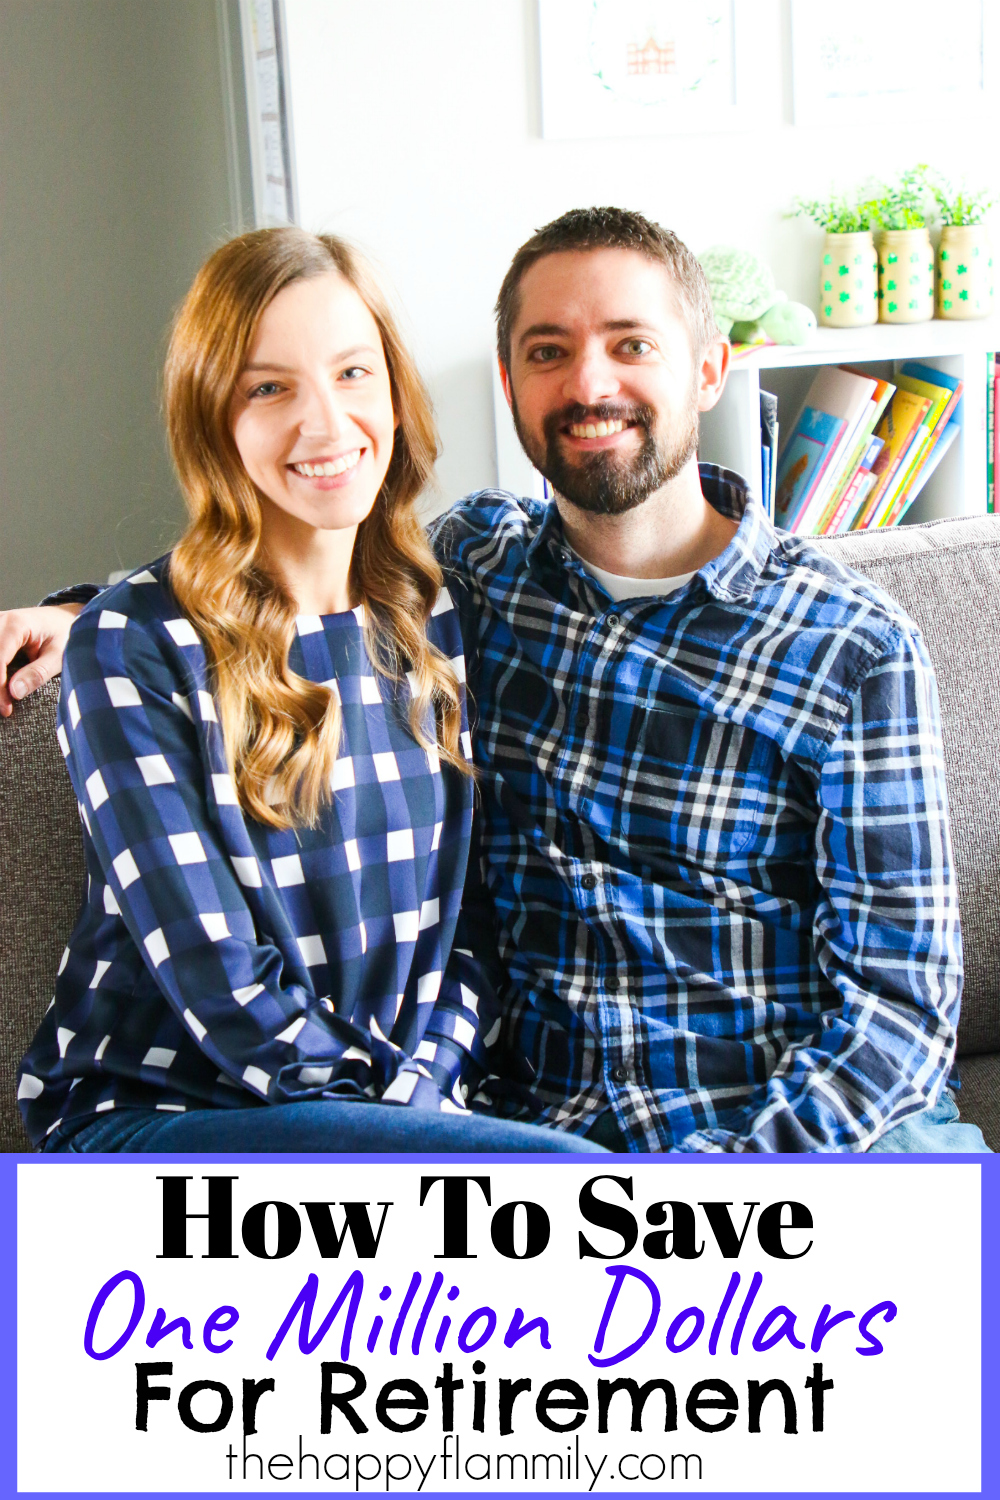 How to budget and save money on a small income. How to save for retirement in your 30s. How to save money. How to live frugally. How to make one million dollars. How to save one million dollars. Retirement savings plan. How to stick to a budget. Pay student loans fast. #budgeting #finance #savings #retirement #frugal #couponing #income #debtsnowball